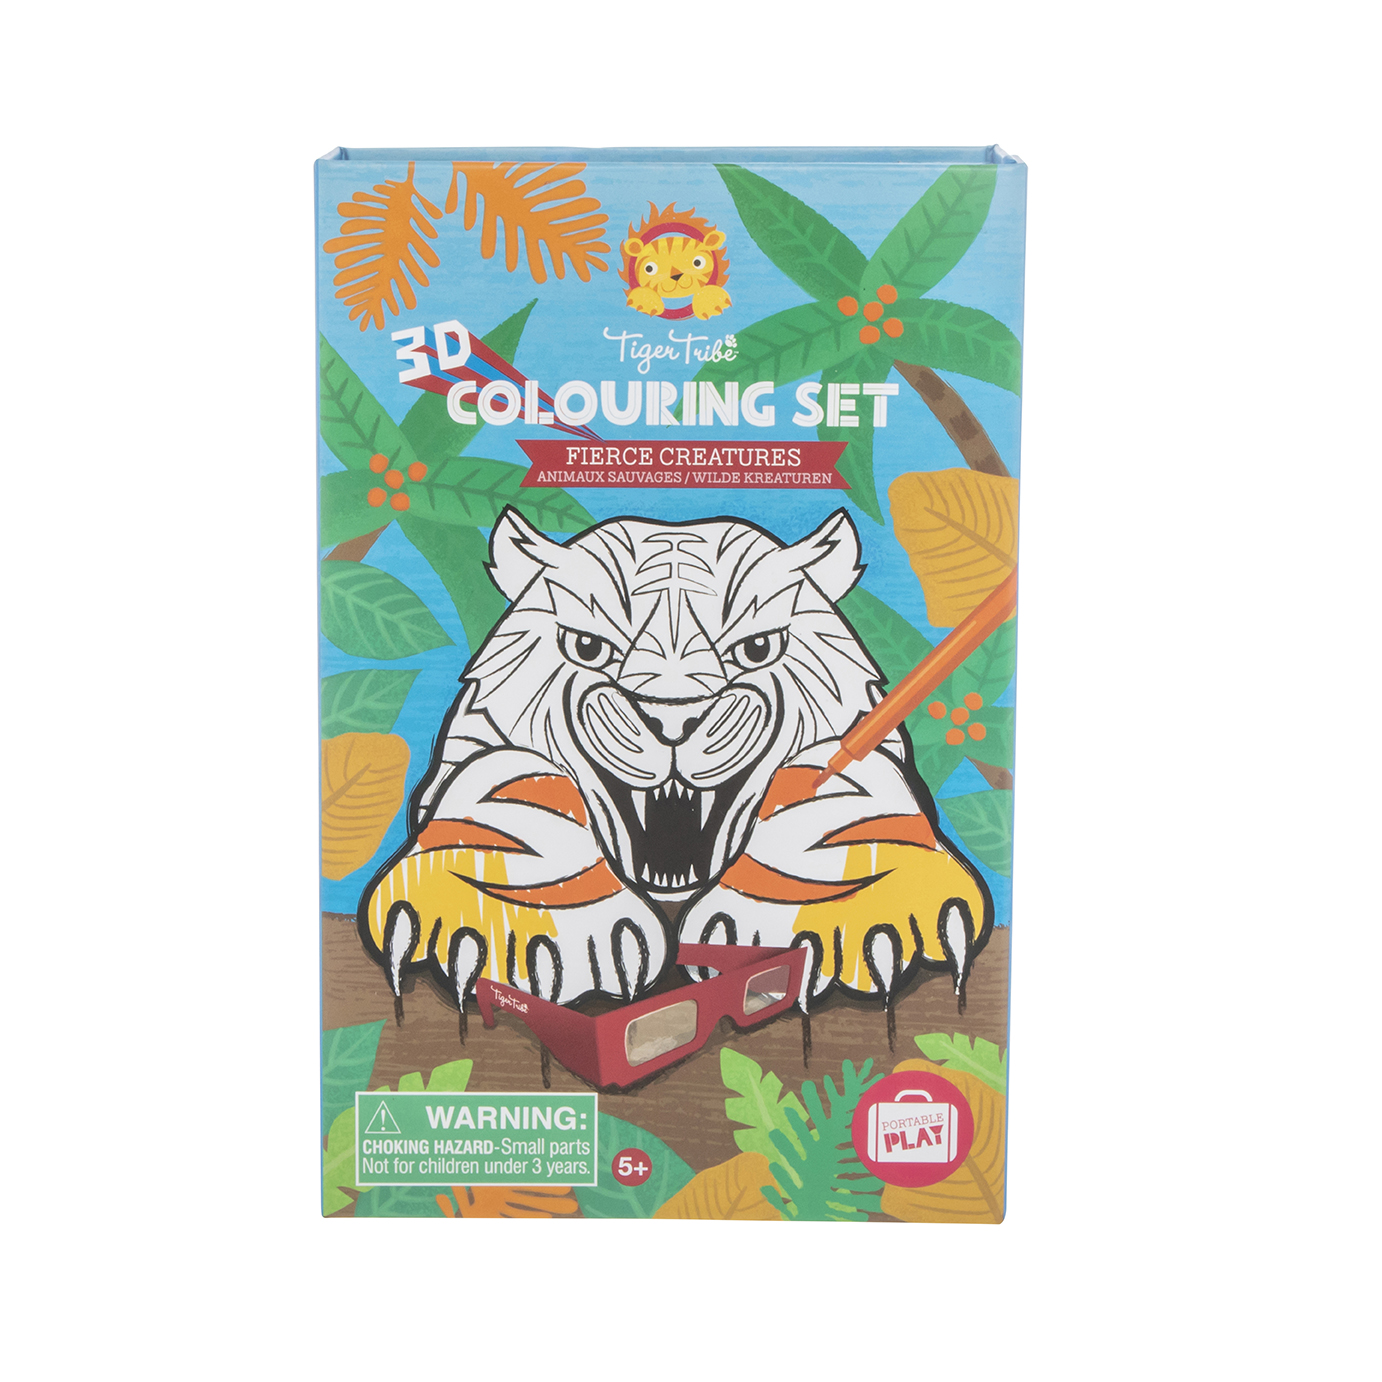 Colouring Set 3D Fierce Creatures